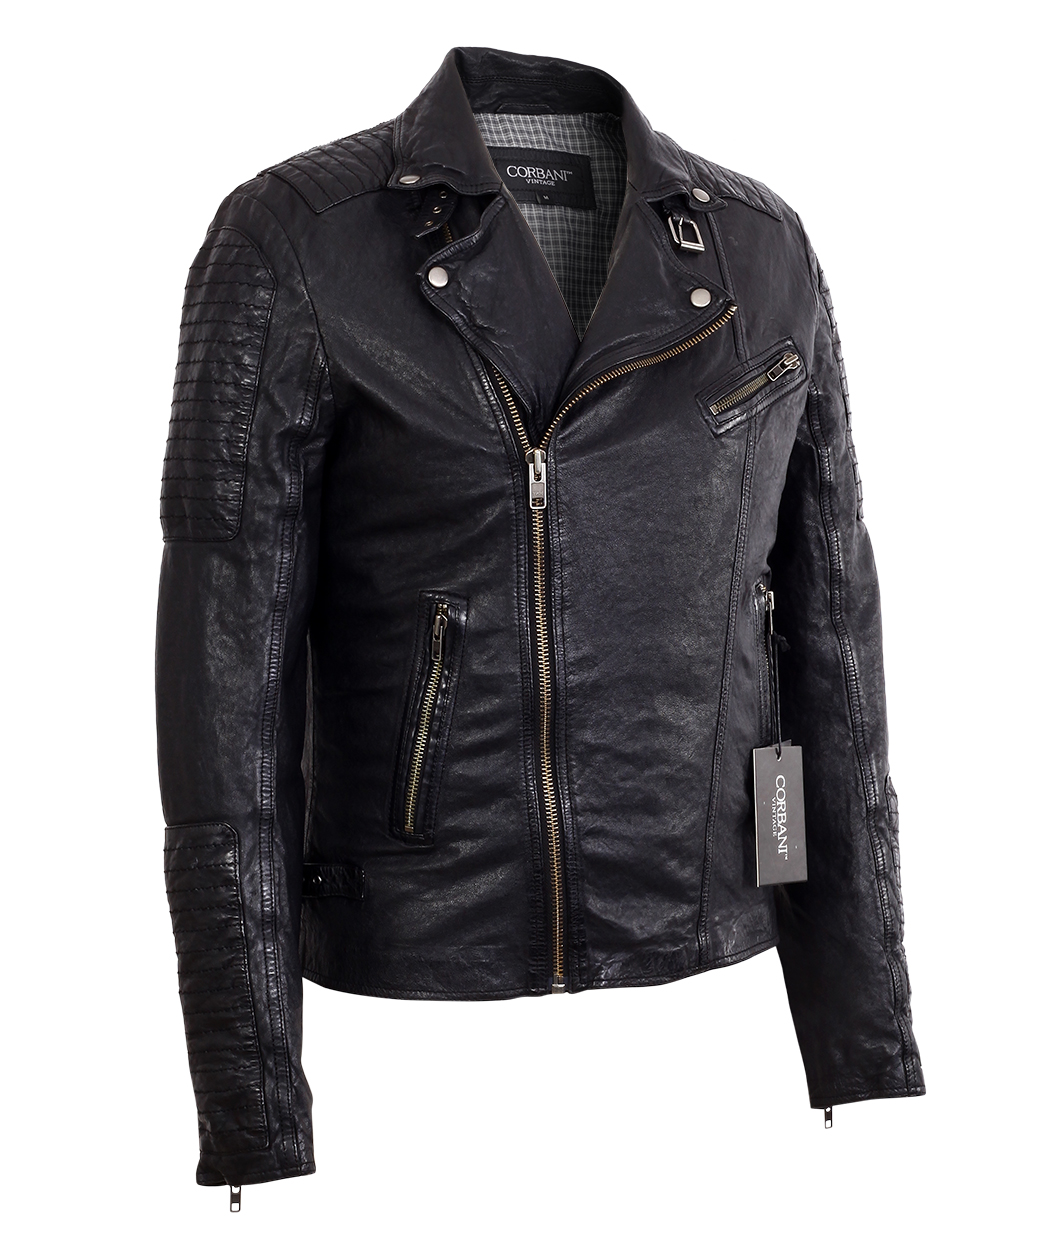 81d695762 Mens Asymmetrical Biker Vintage Black Lambskin Real Leather Jacket